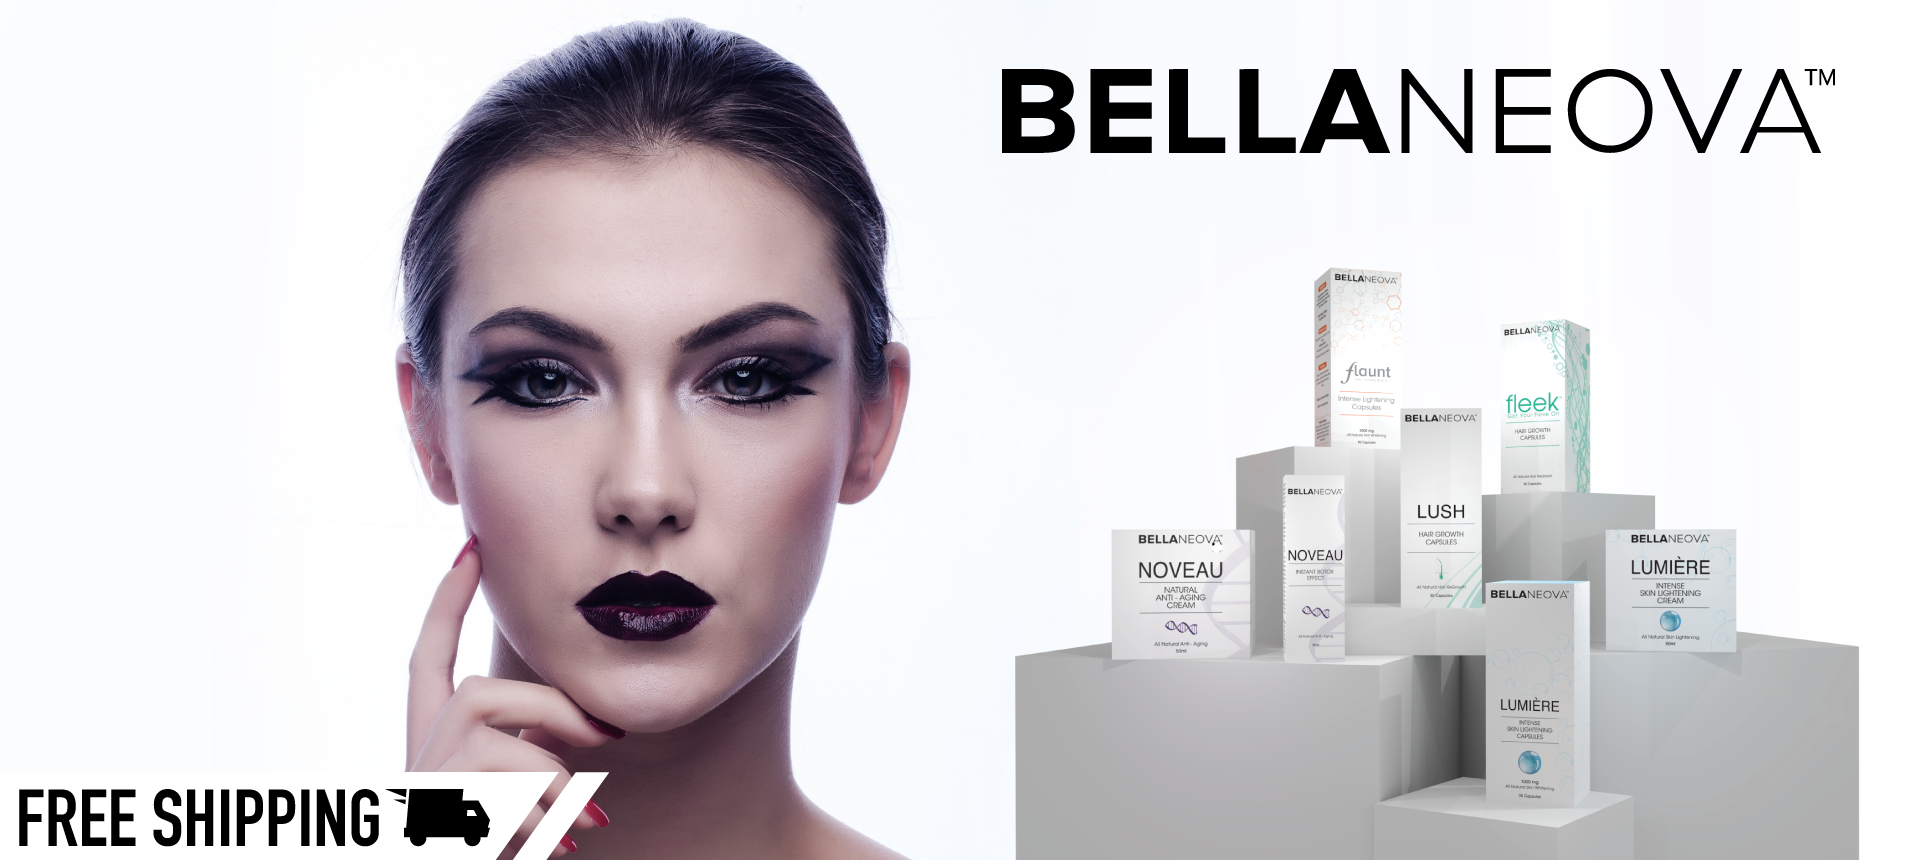 Bellaneovas NEW Range of Hair Skin Lightening and Anti-Aging and Ageing Products